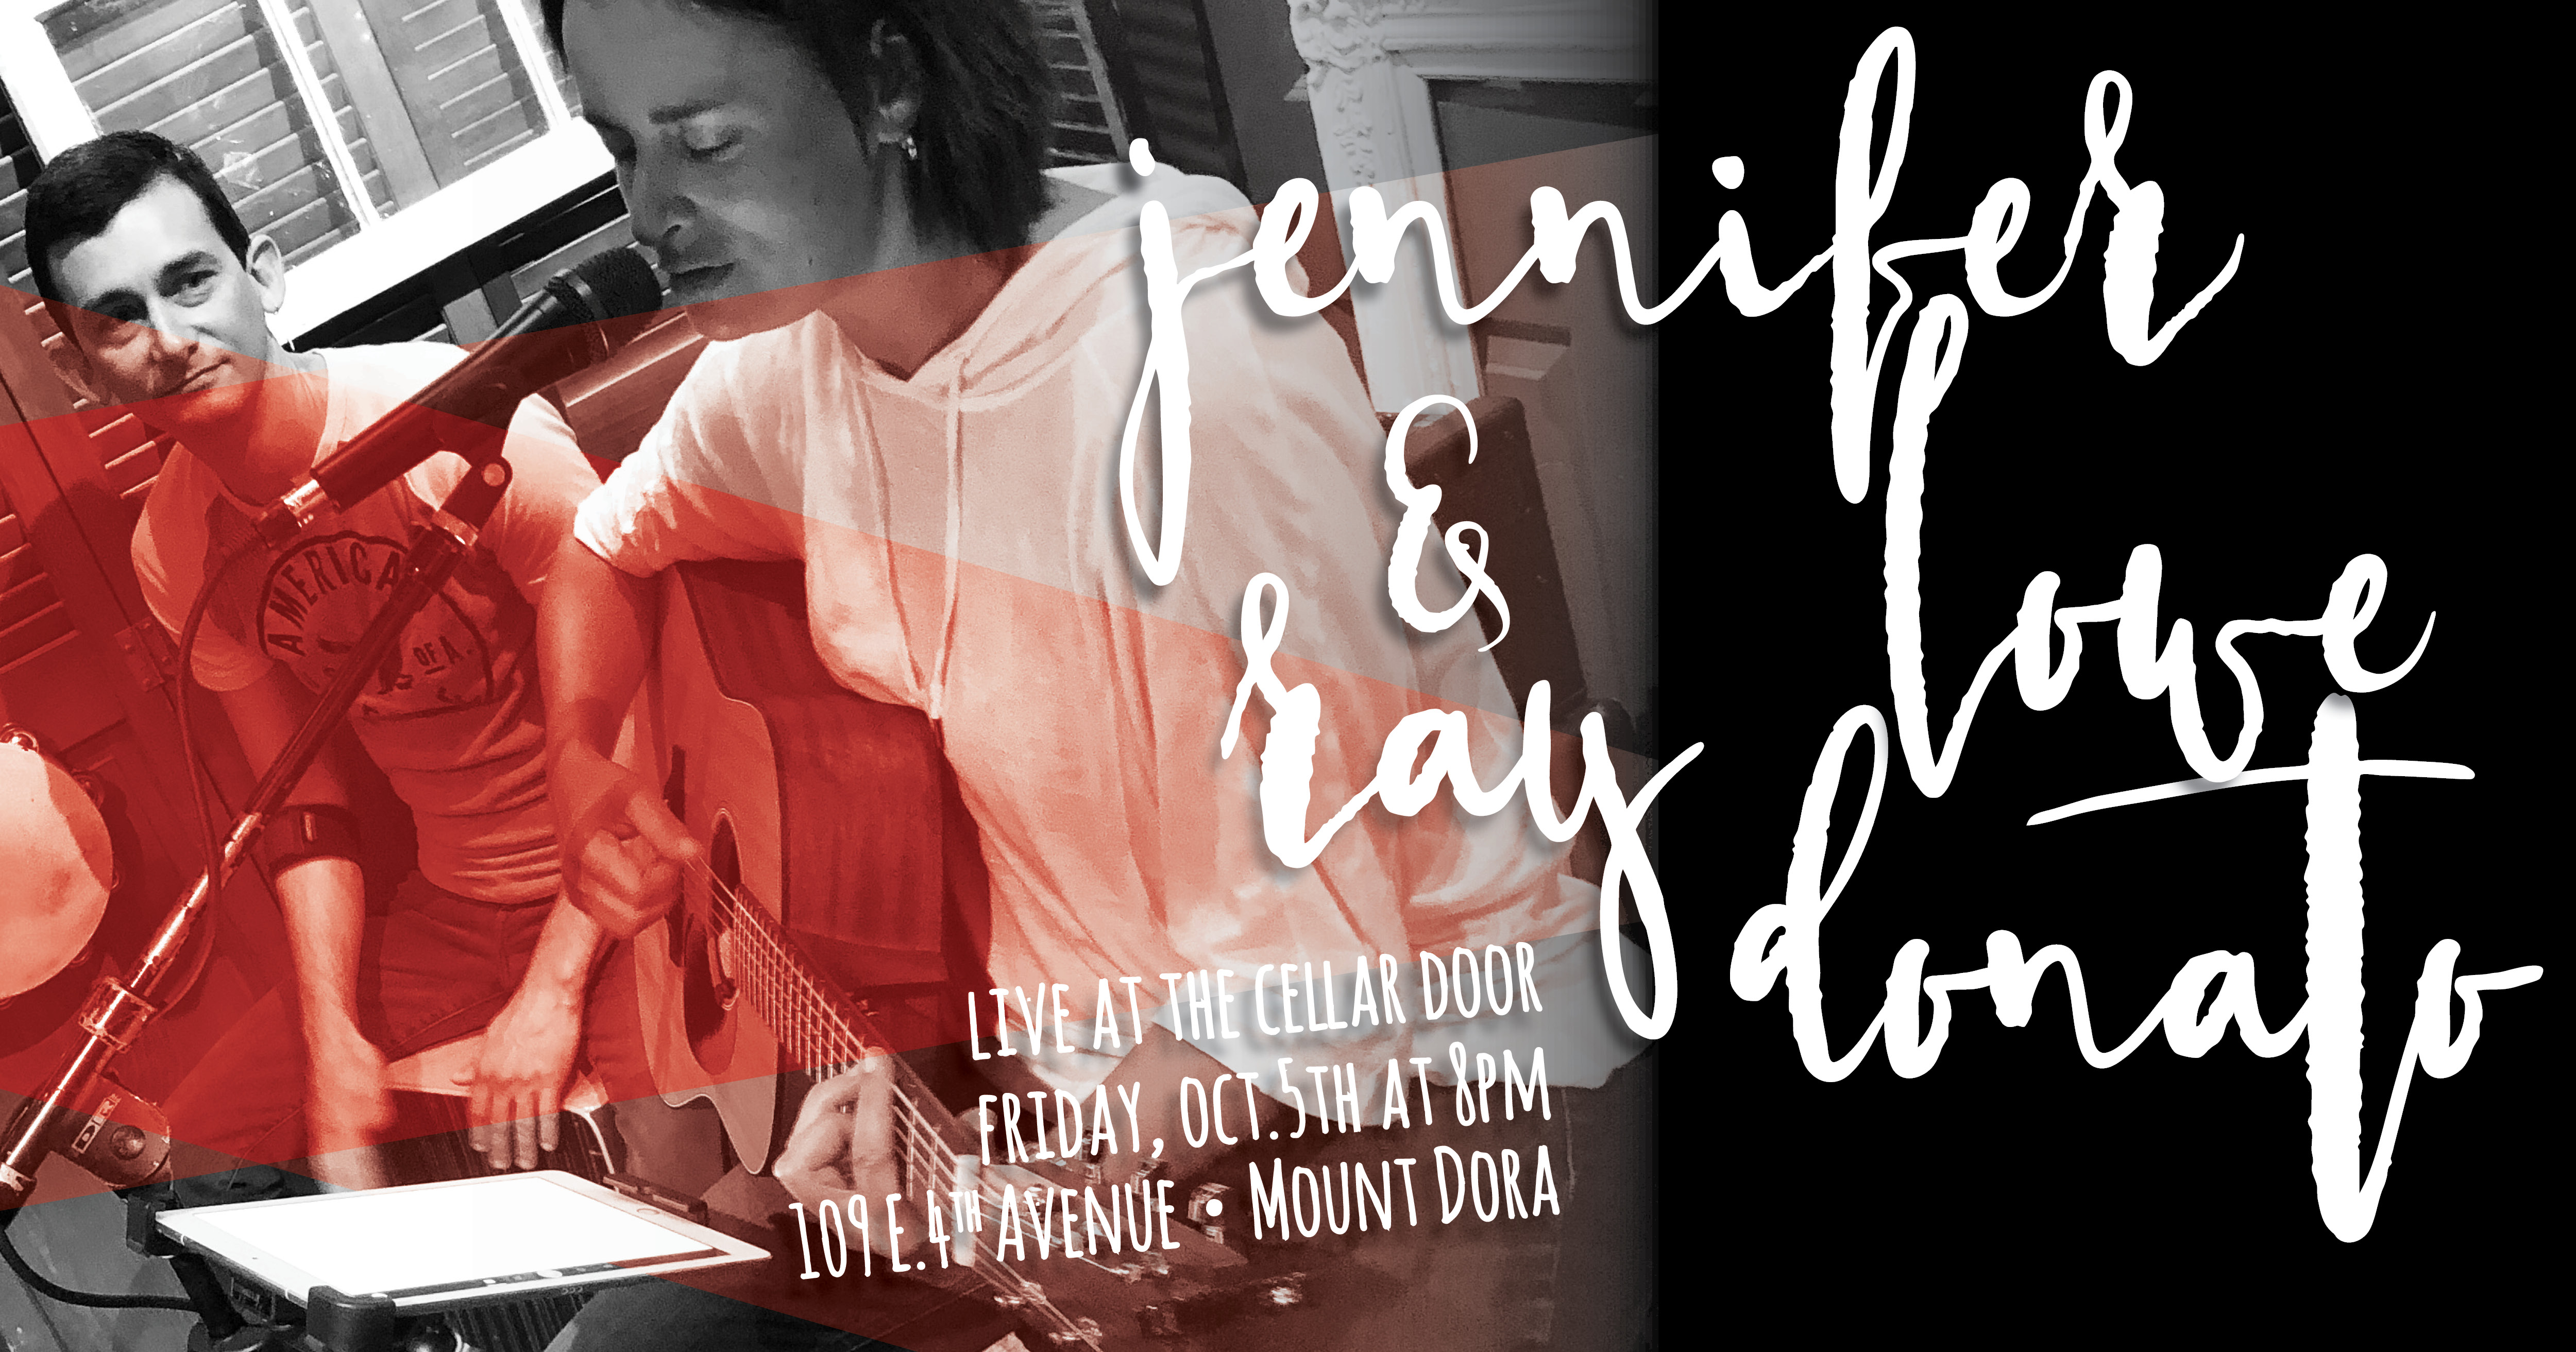 Jennifer Lowe & Ray Donato: Live at The Cellar Door – the